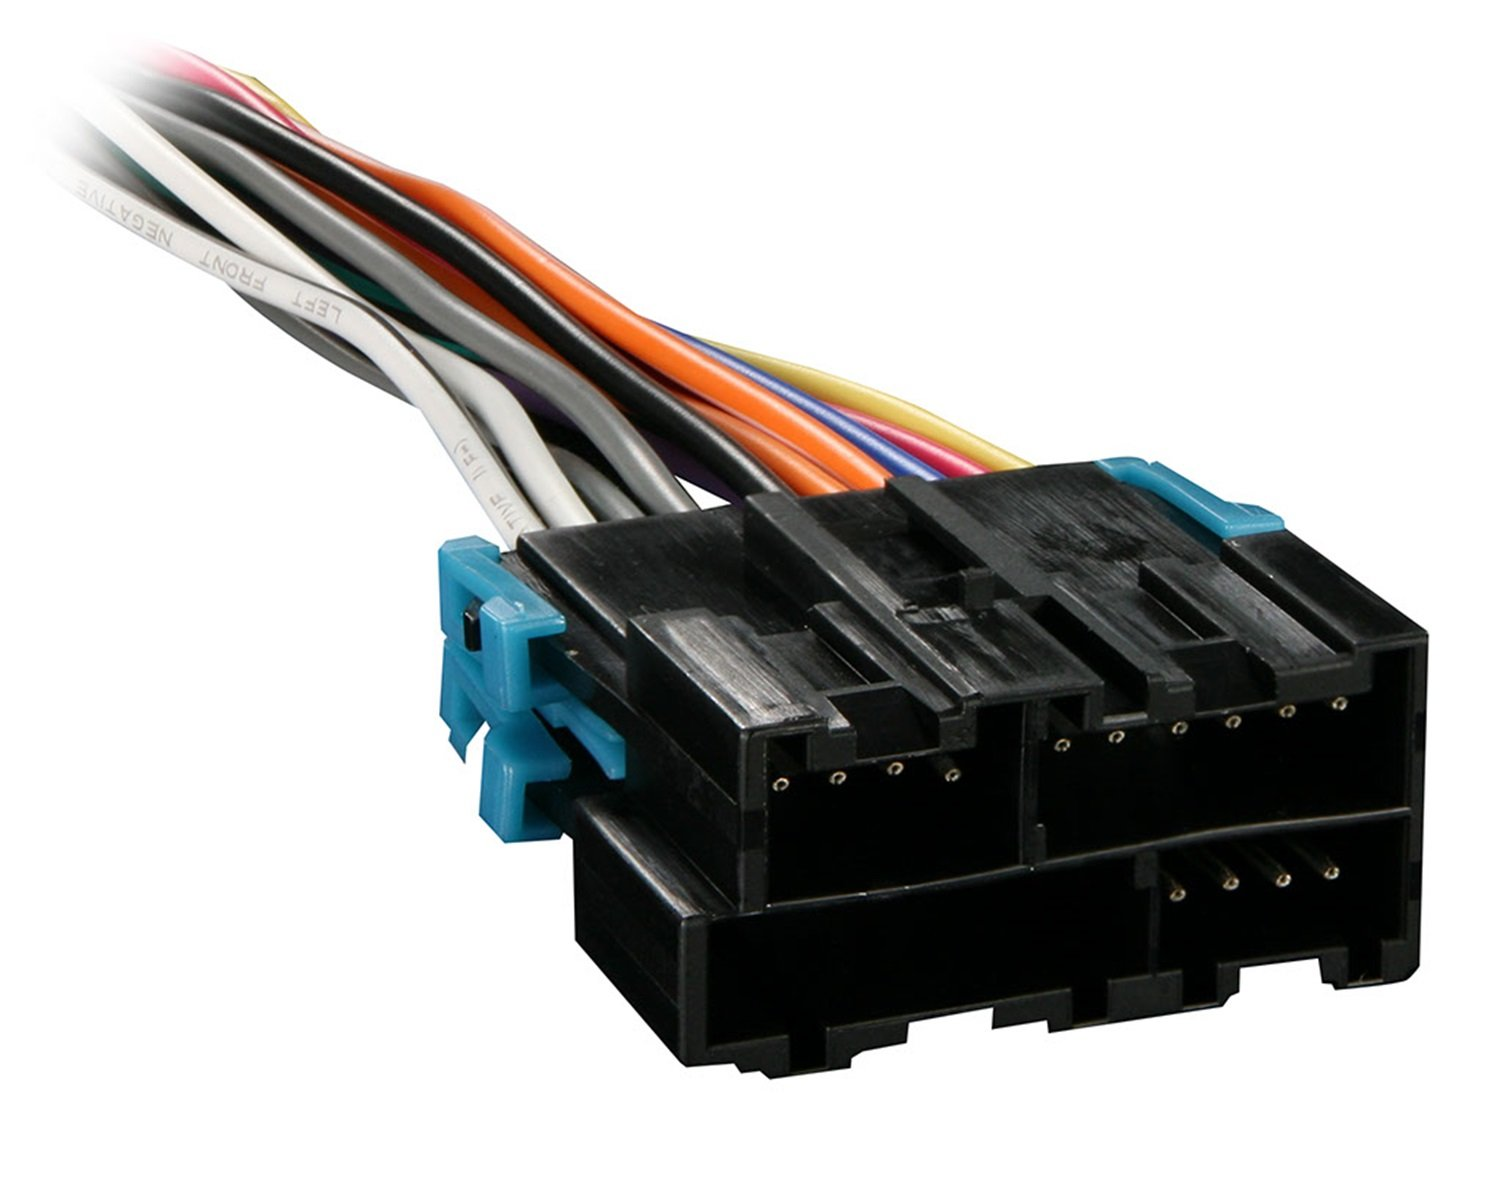 61 CwjZt1hL._SL1500_ radio wiring harnesses amazon com snap on wire harness adapter at mifinder.co